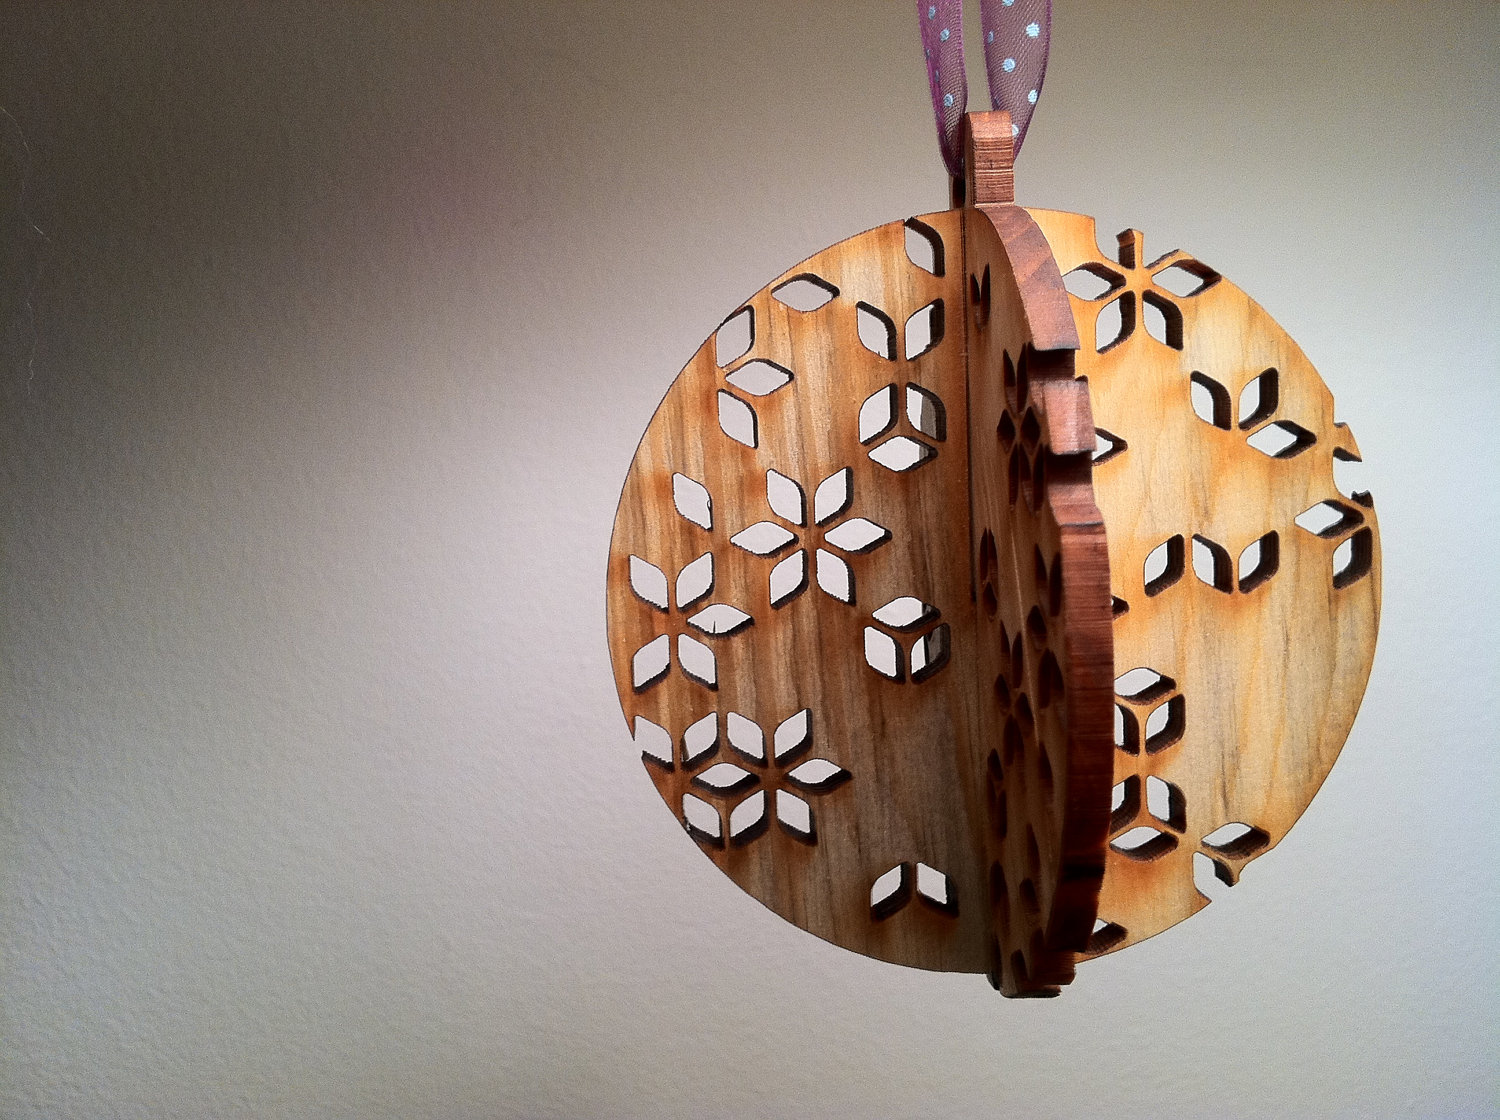 40 - Wooden Christmas Decorations